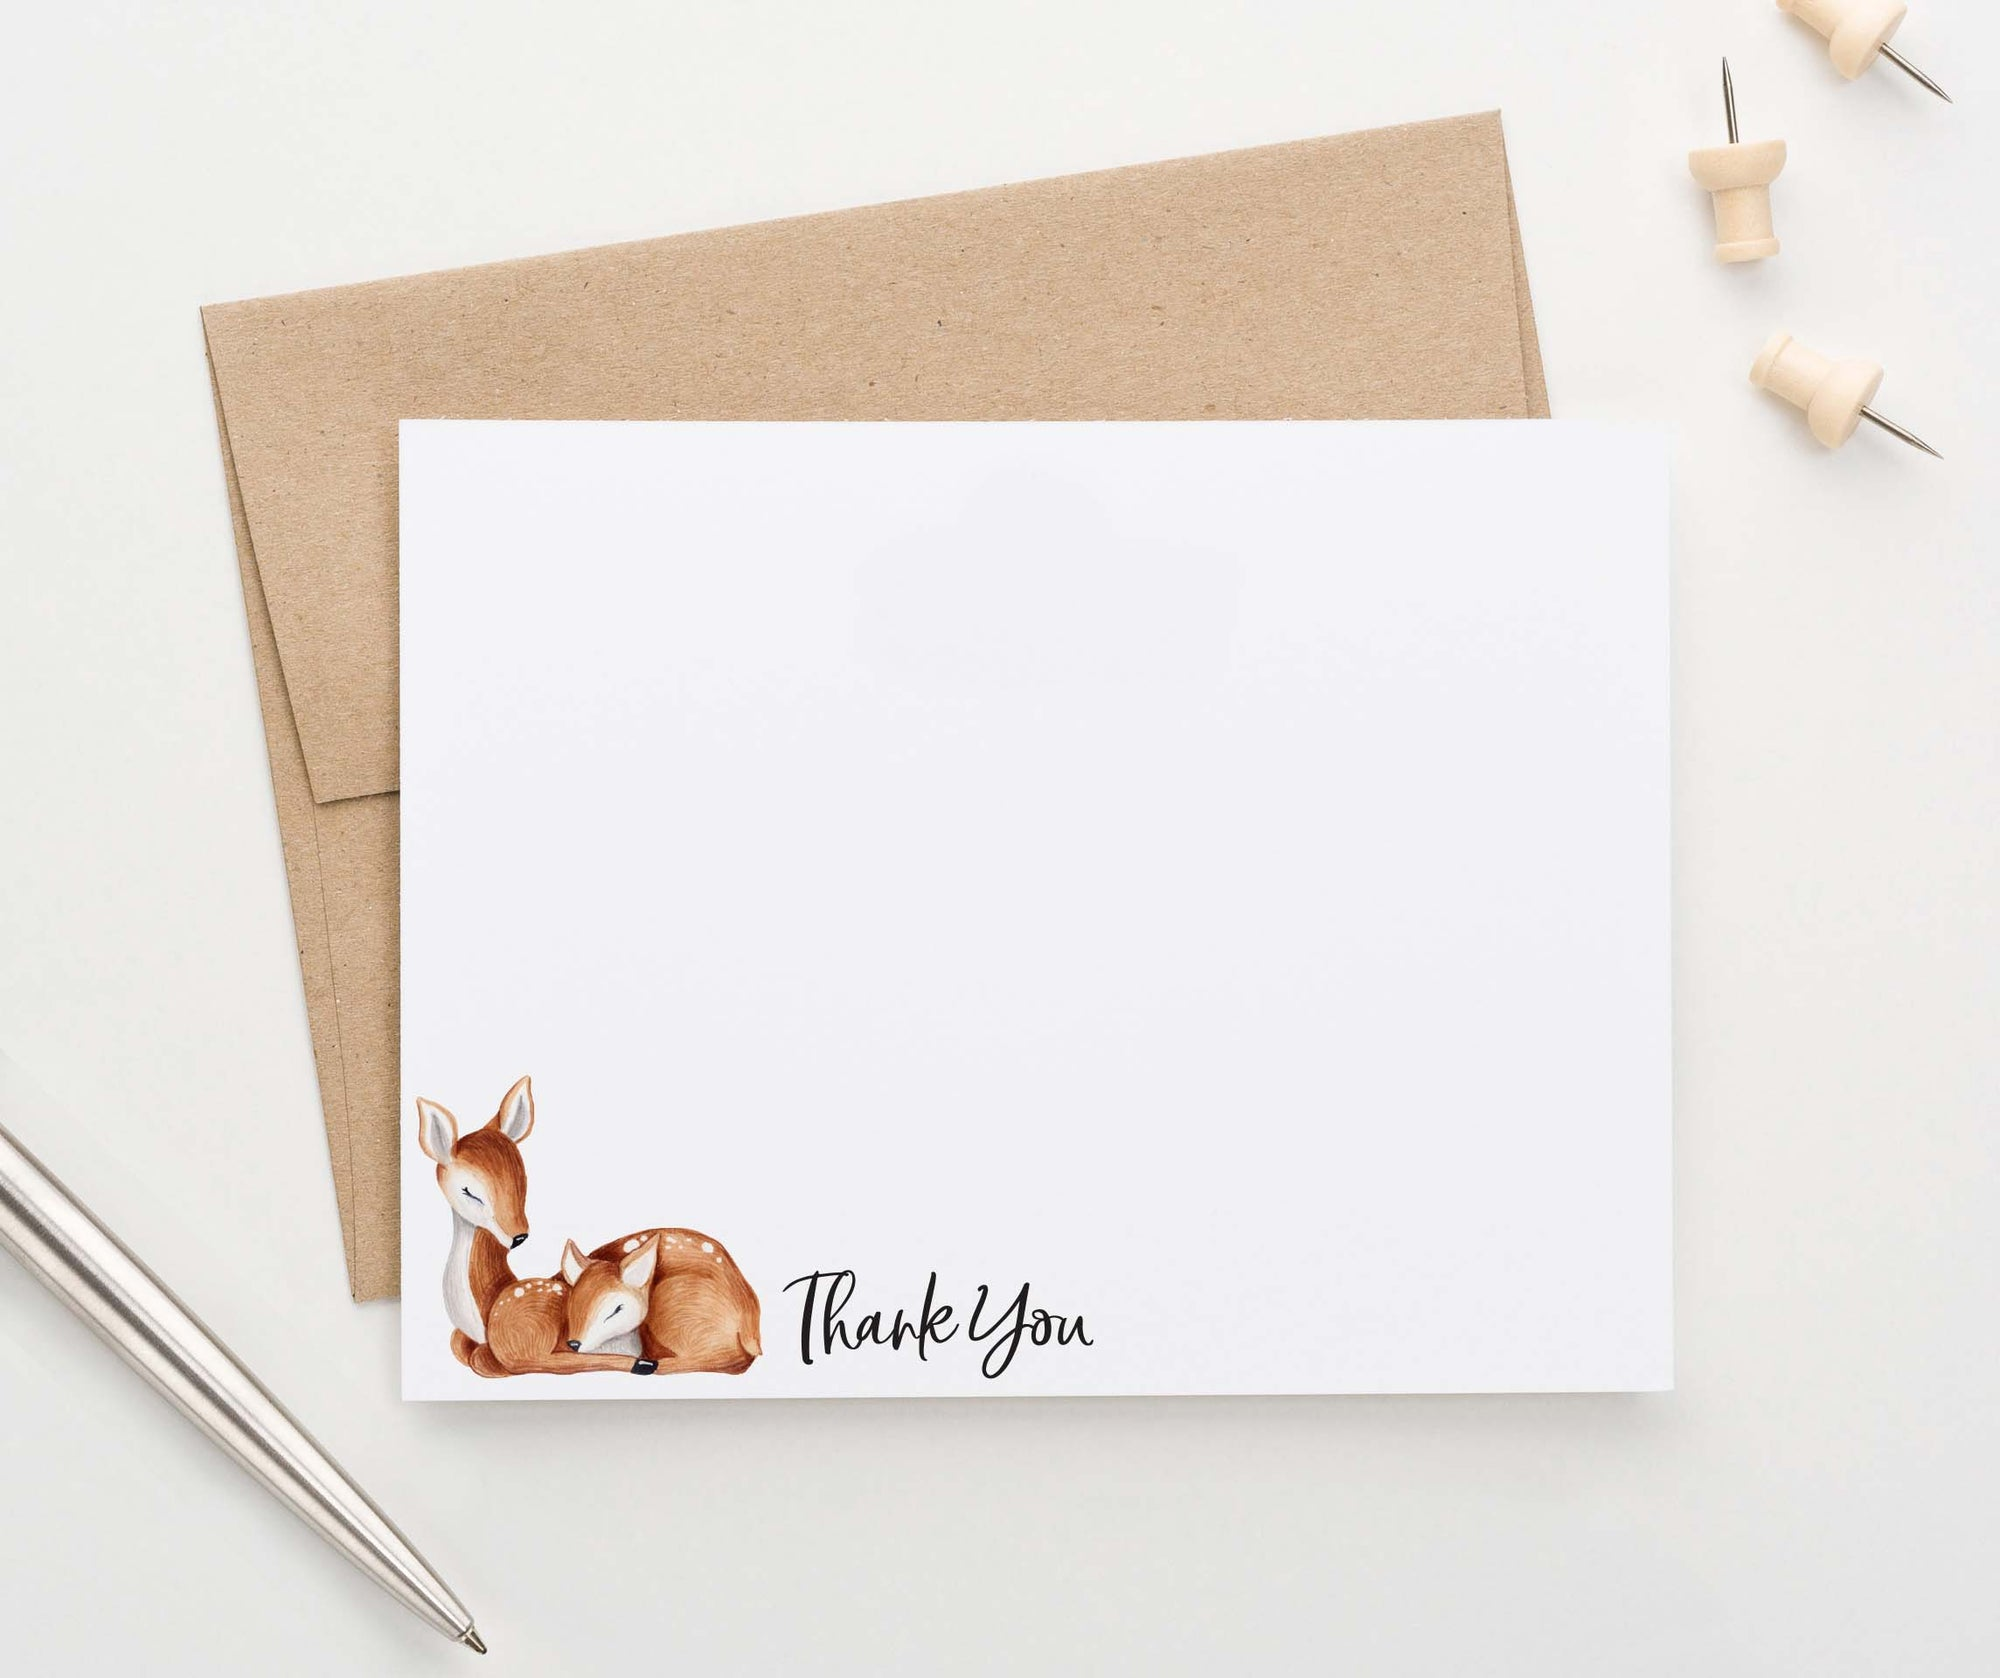 TY045 deer thank you cards for baby shower kids forest animal thankyou